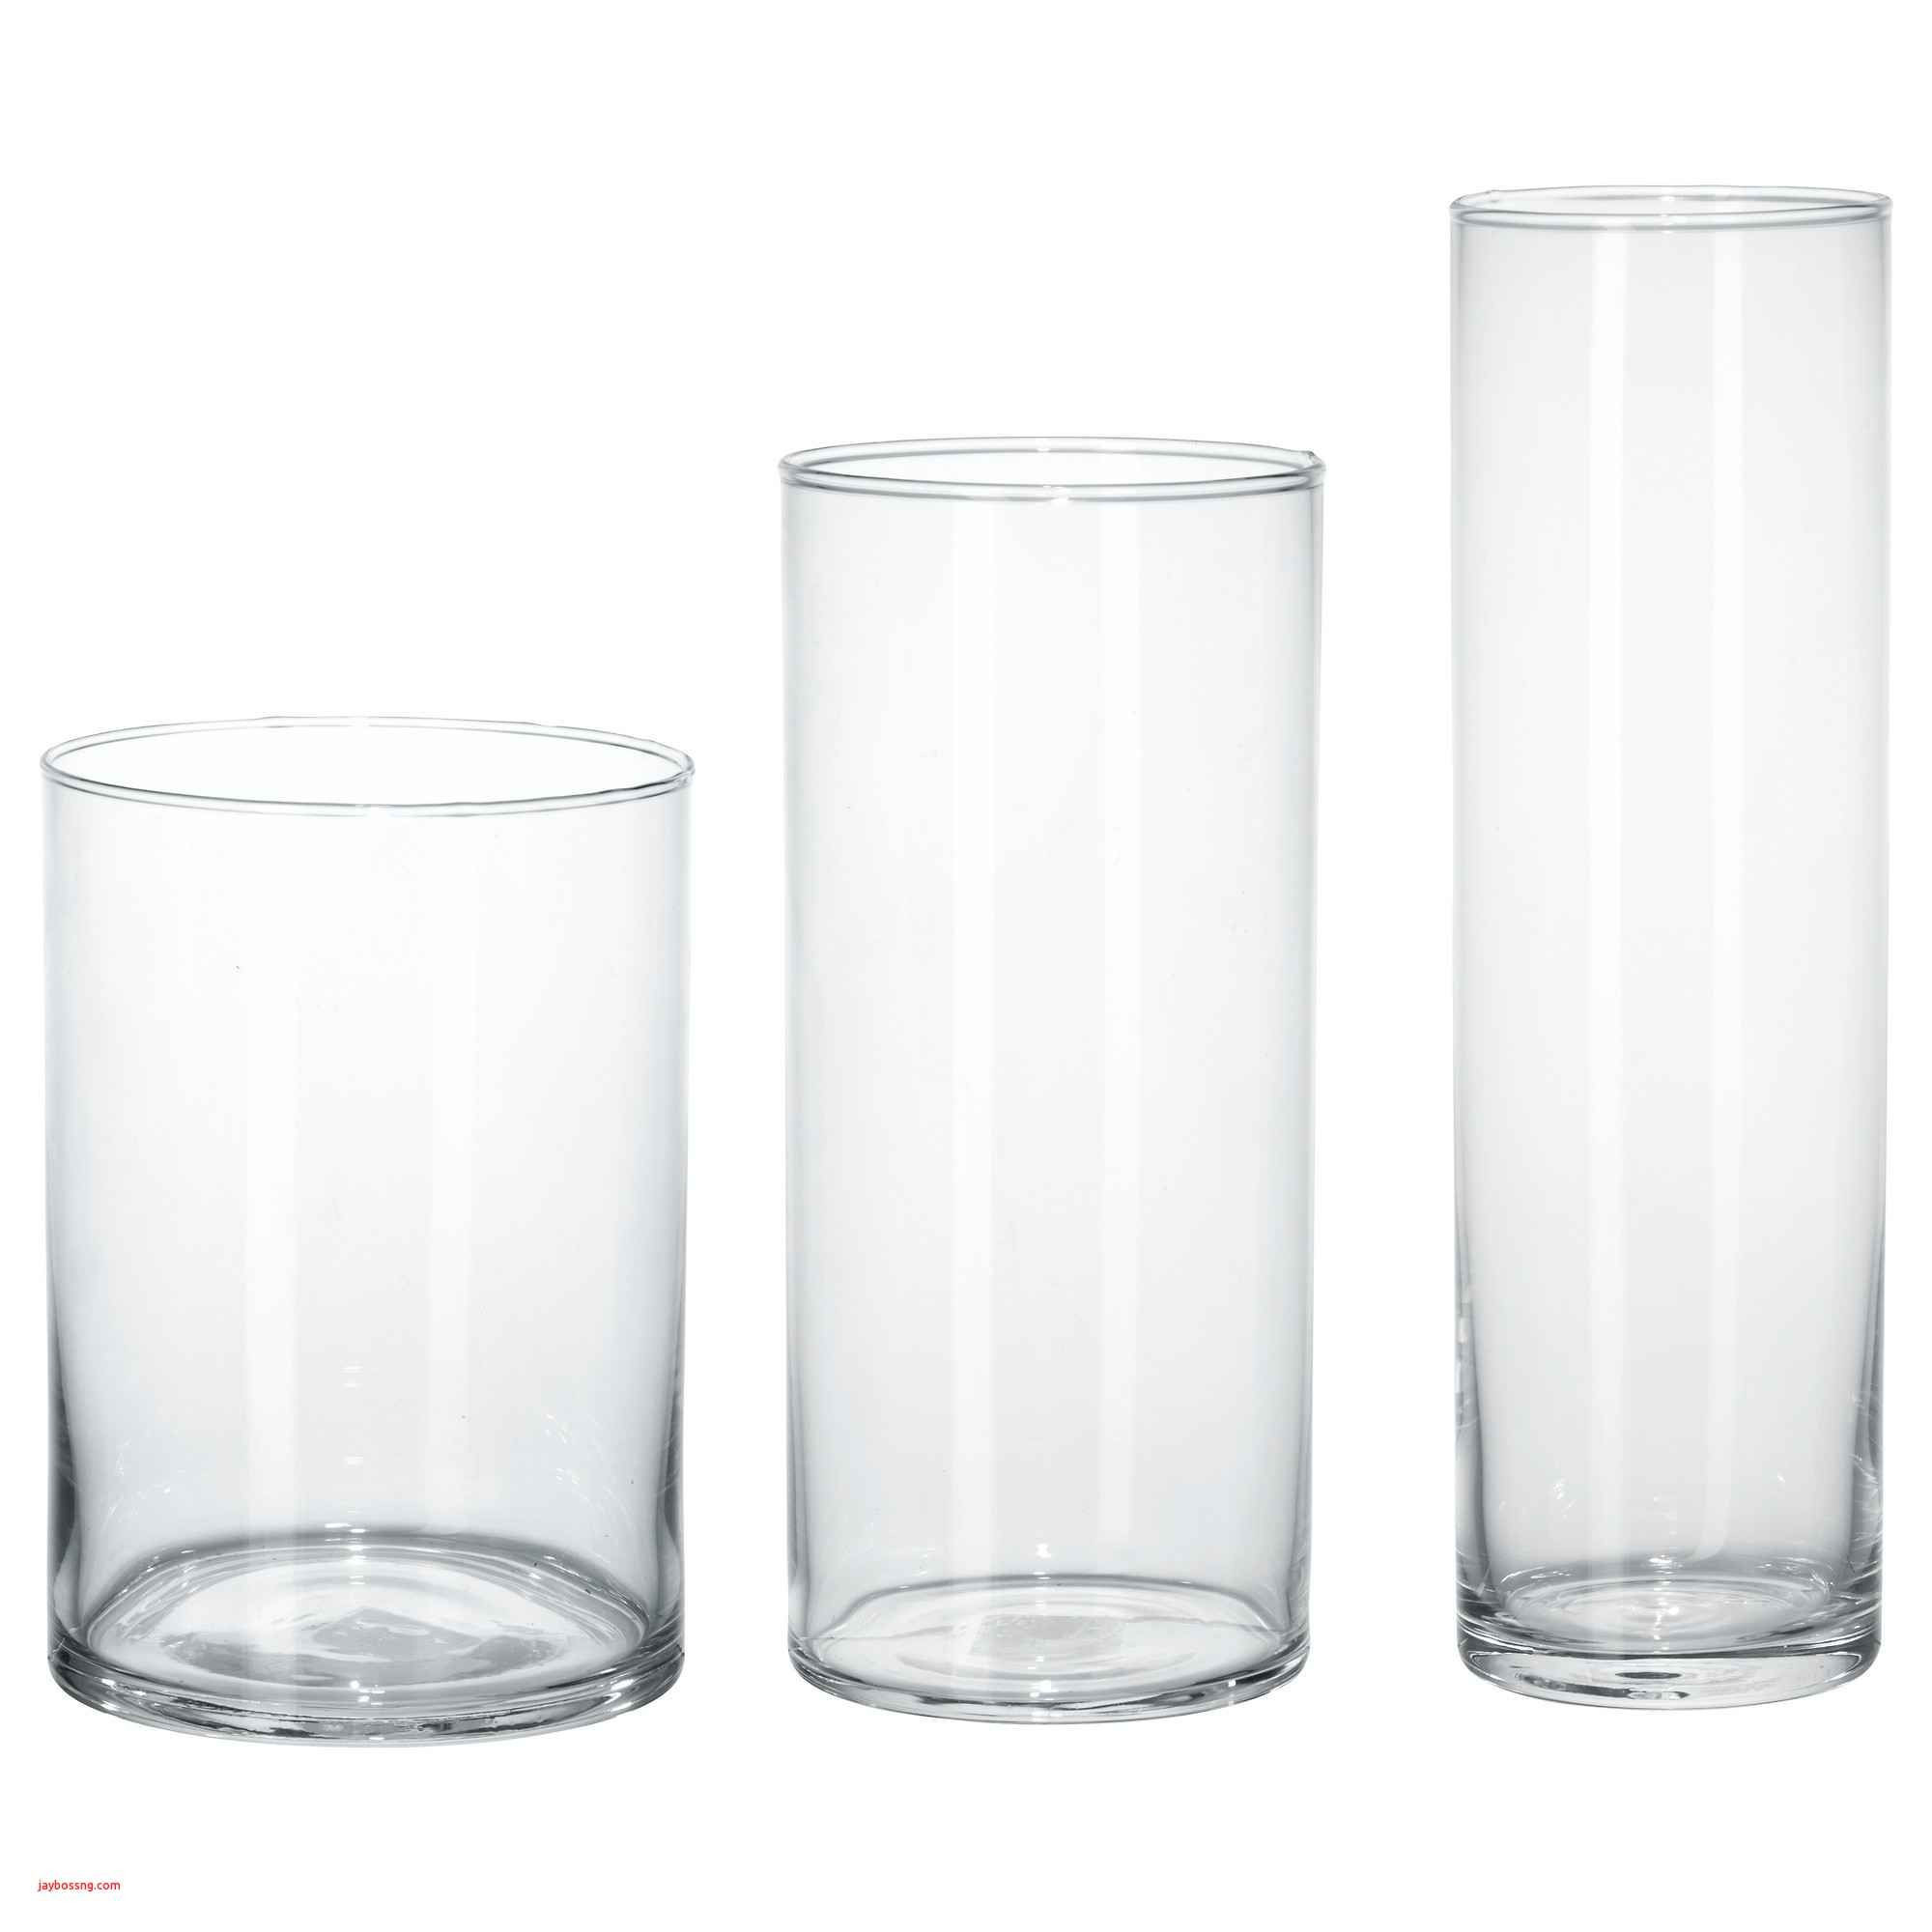 11 Spectacular Tall Square Glass Vases for Centerpieces 2021 free download tall square glass vases for centerpieces of brown glass vase fresh ikea white table created pe s5h vases ikea with brown glass vase fresh ikea white table created pe s5h vases ikea vase i 0d